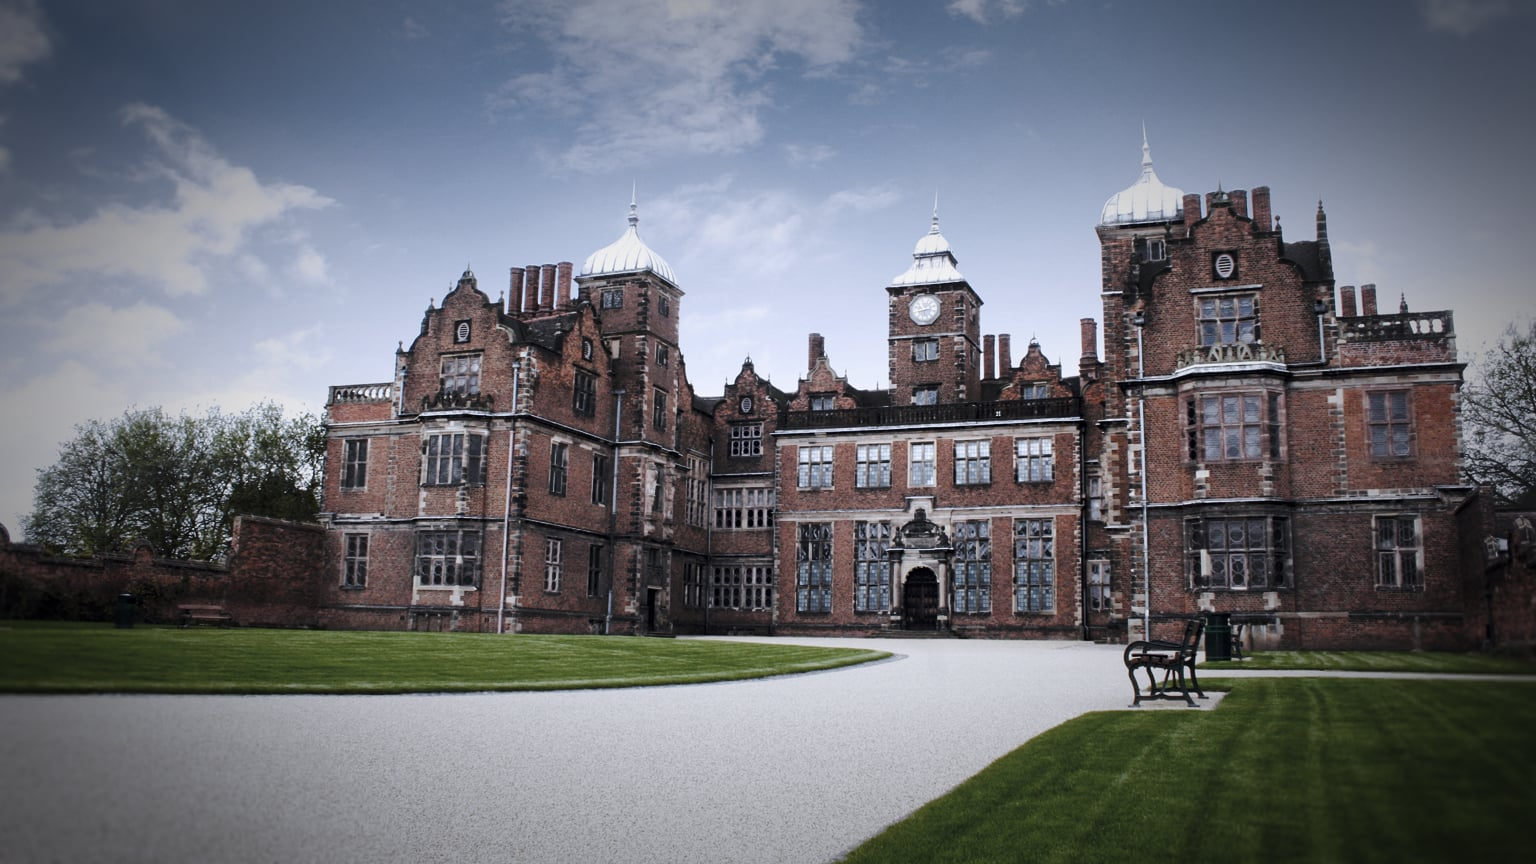 3) Aston Hall, West Midlands - Free entry with National Art Pass